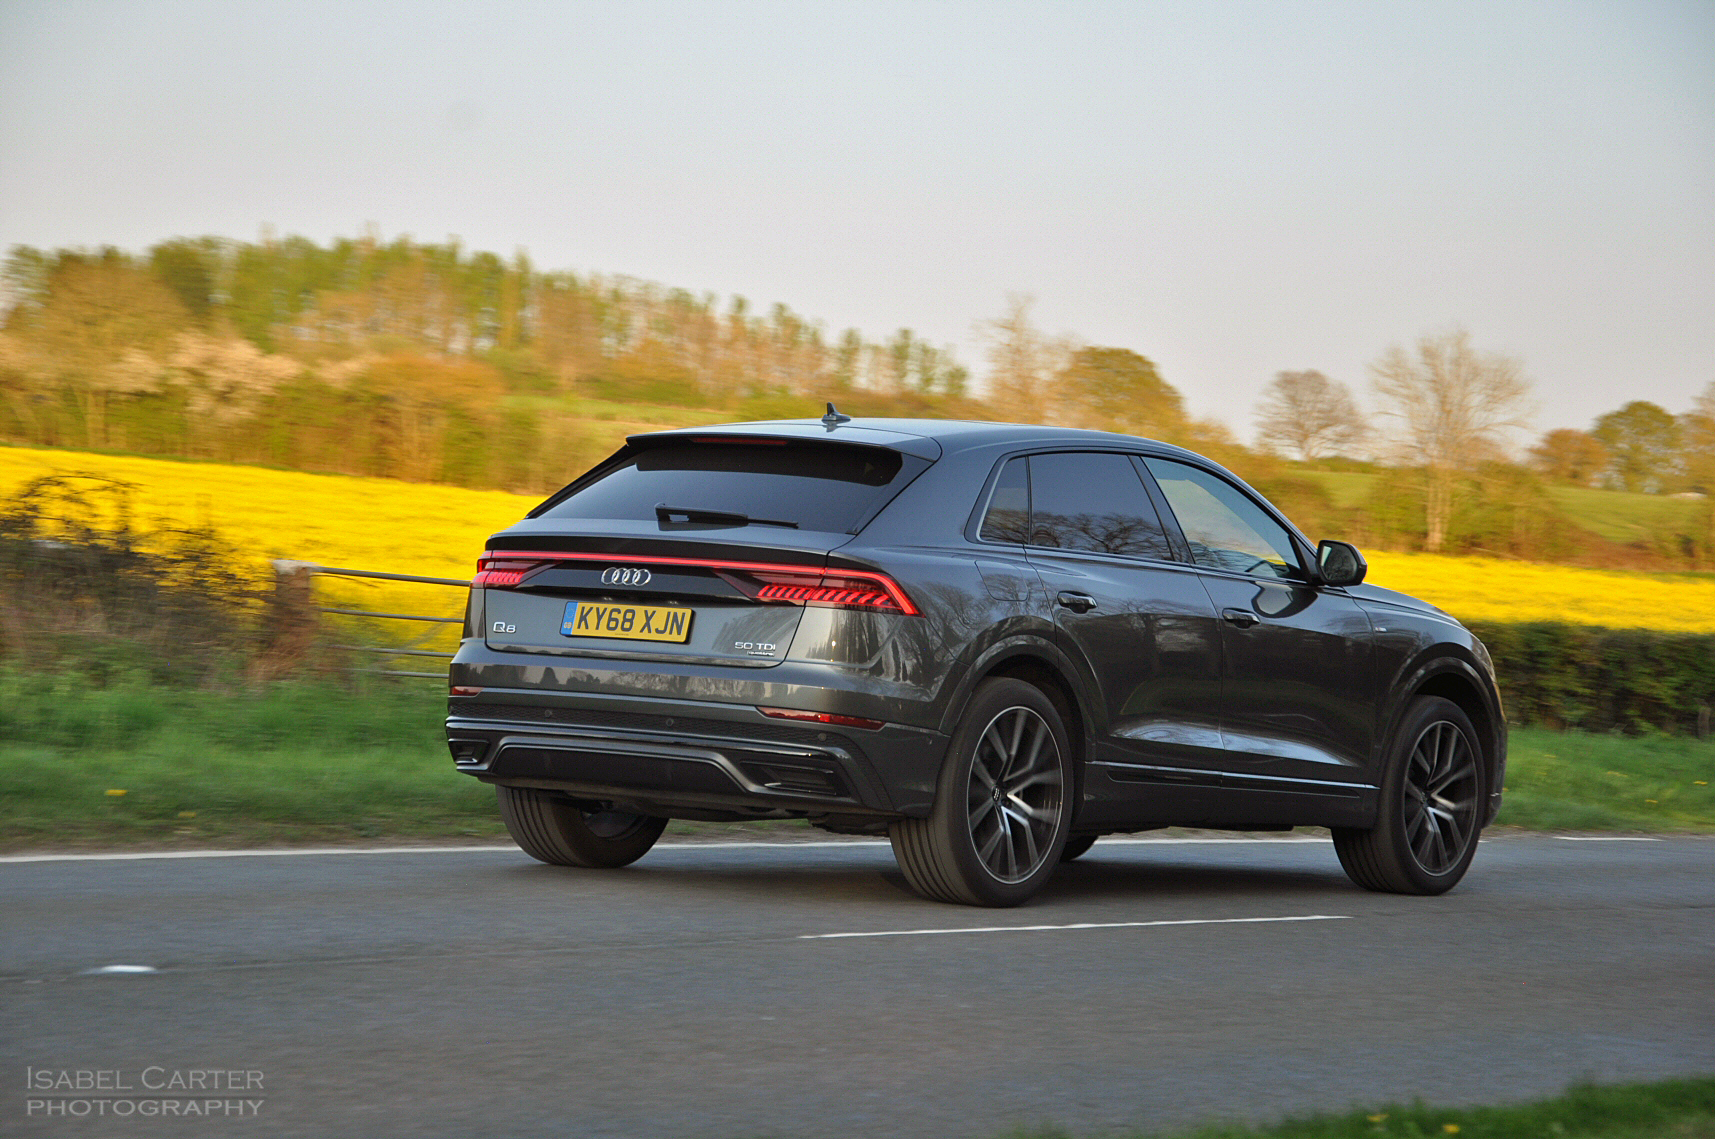 audi q8 suv coupe crossover road test review oliver hammond dynamic rear light bar